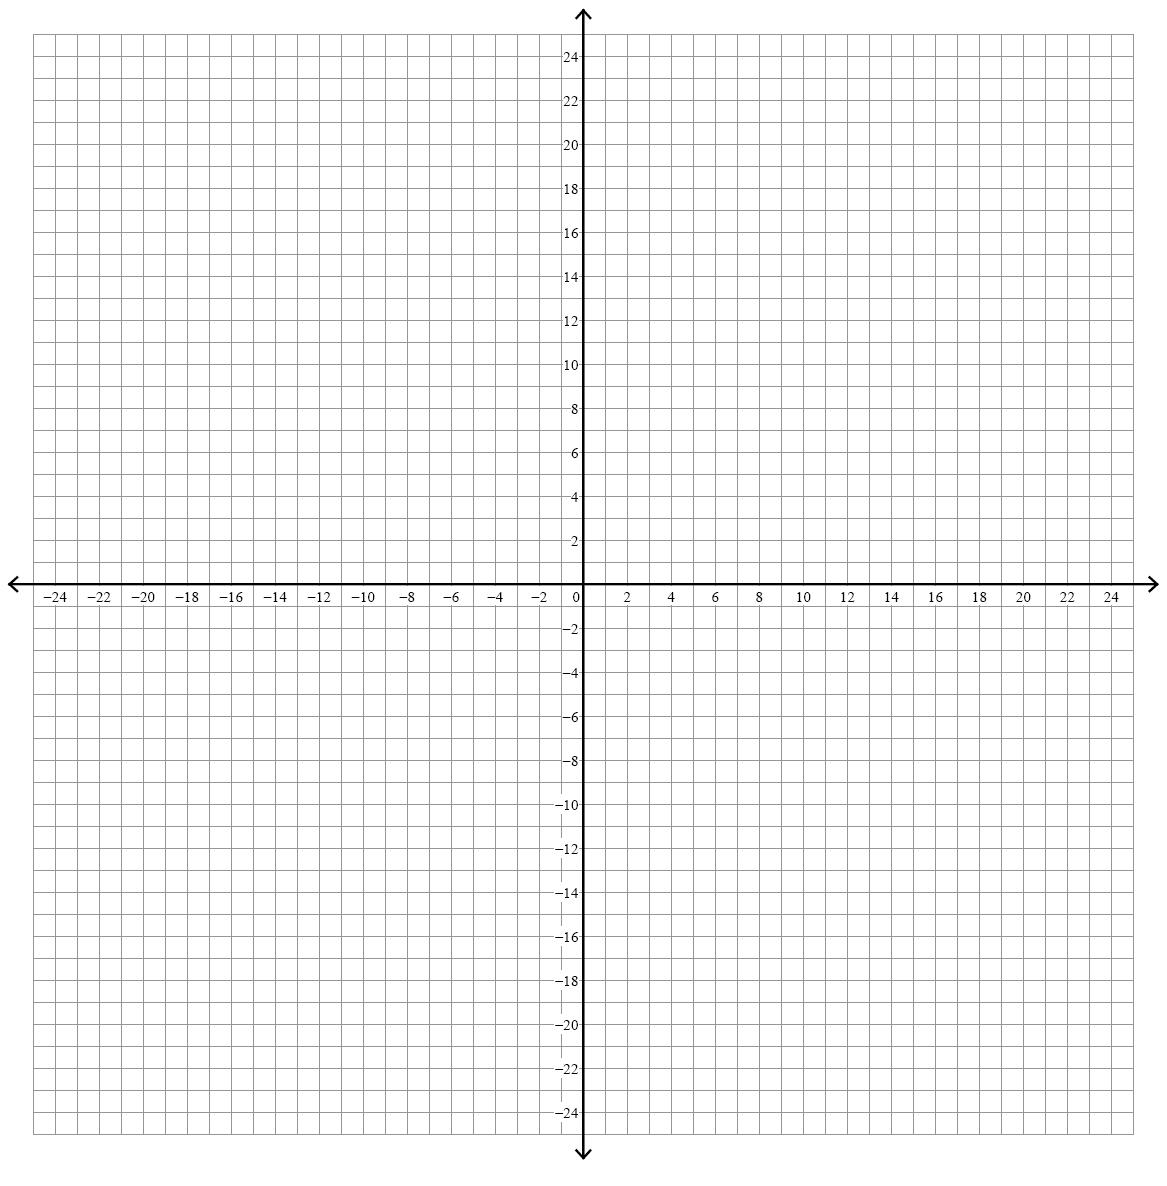 worksheet Graph Paper With Axis similiar 4 quadrant graph paper keywords blank search results calendar 2015